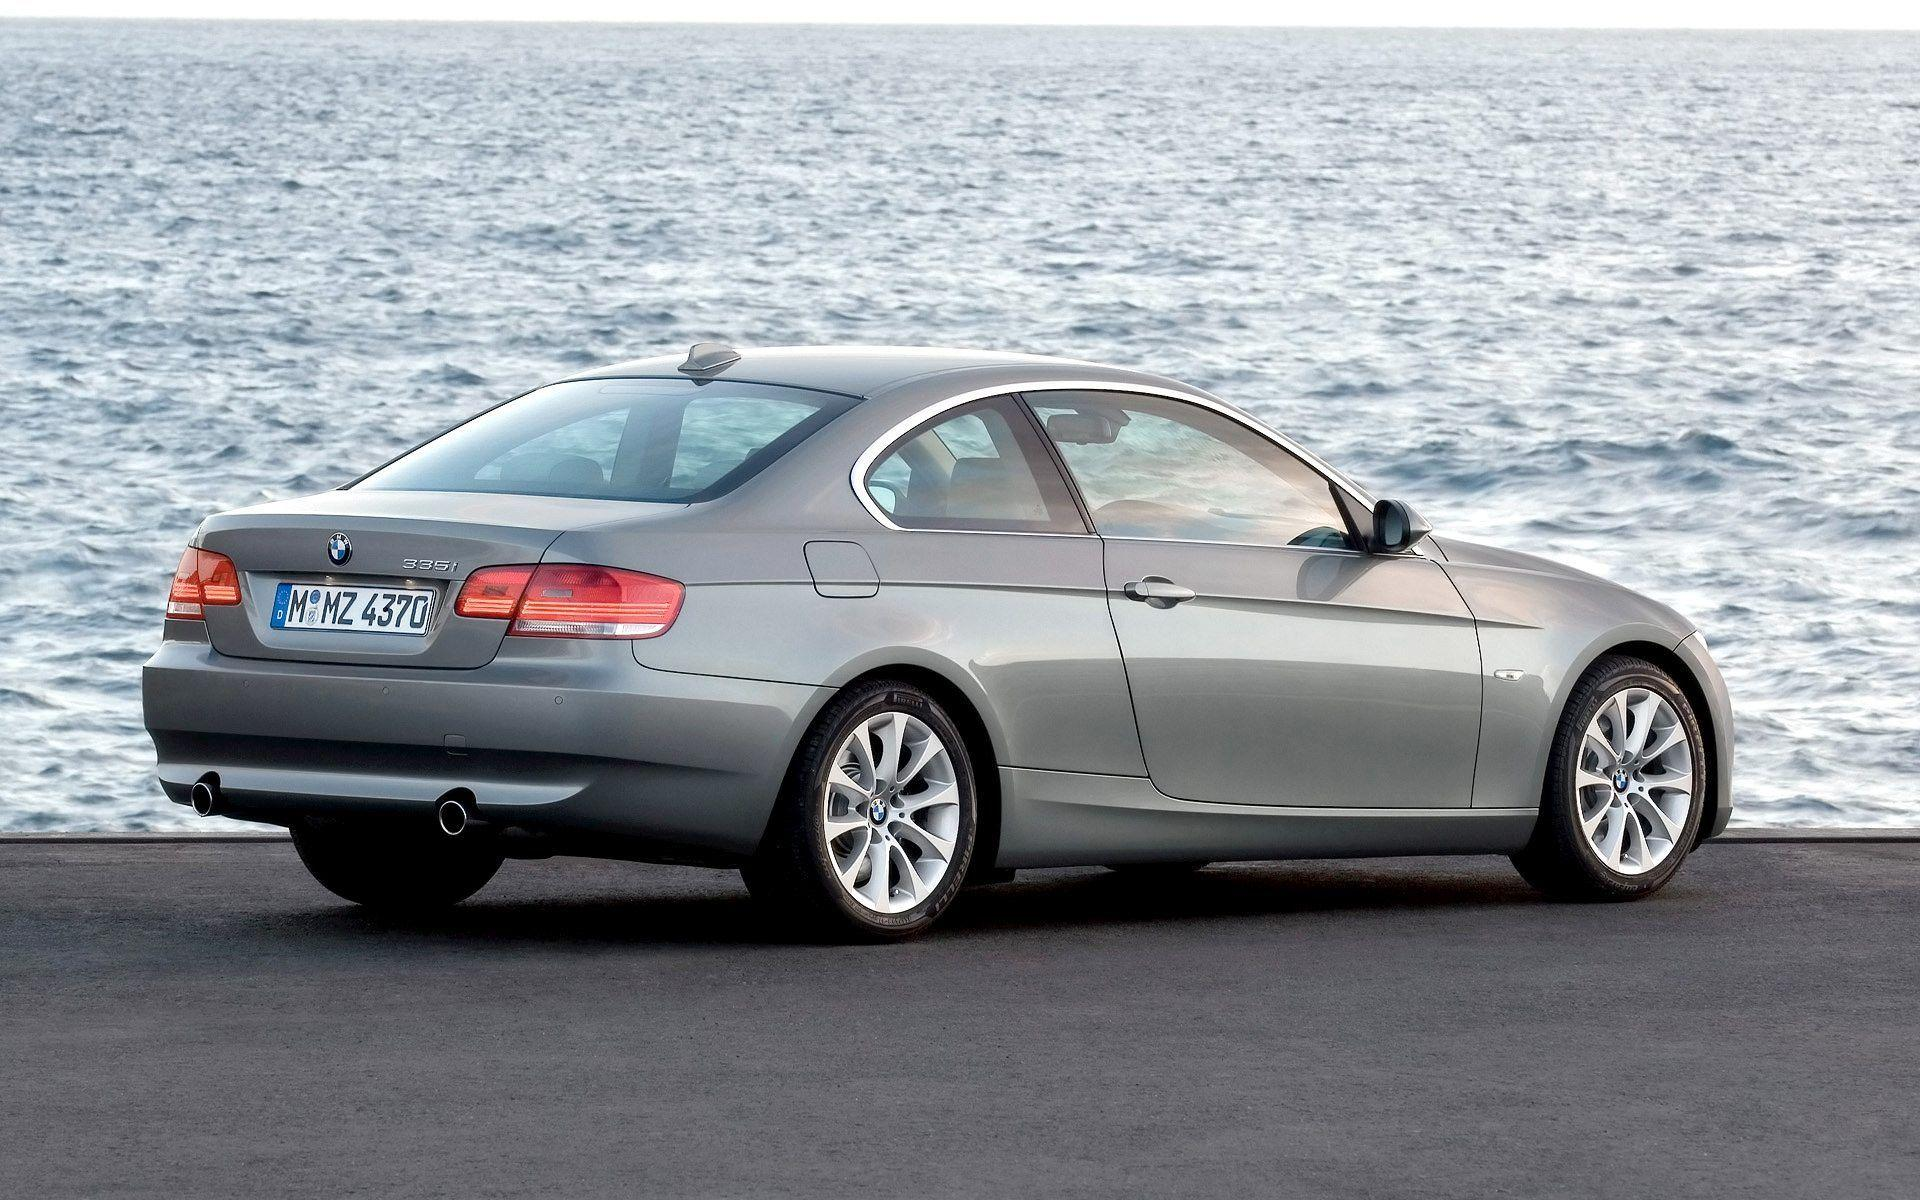 2007 BMW 335i Coupe Wallpaper 06 - 1920x1200